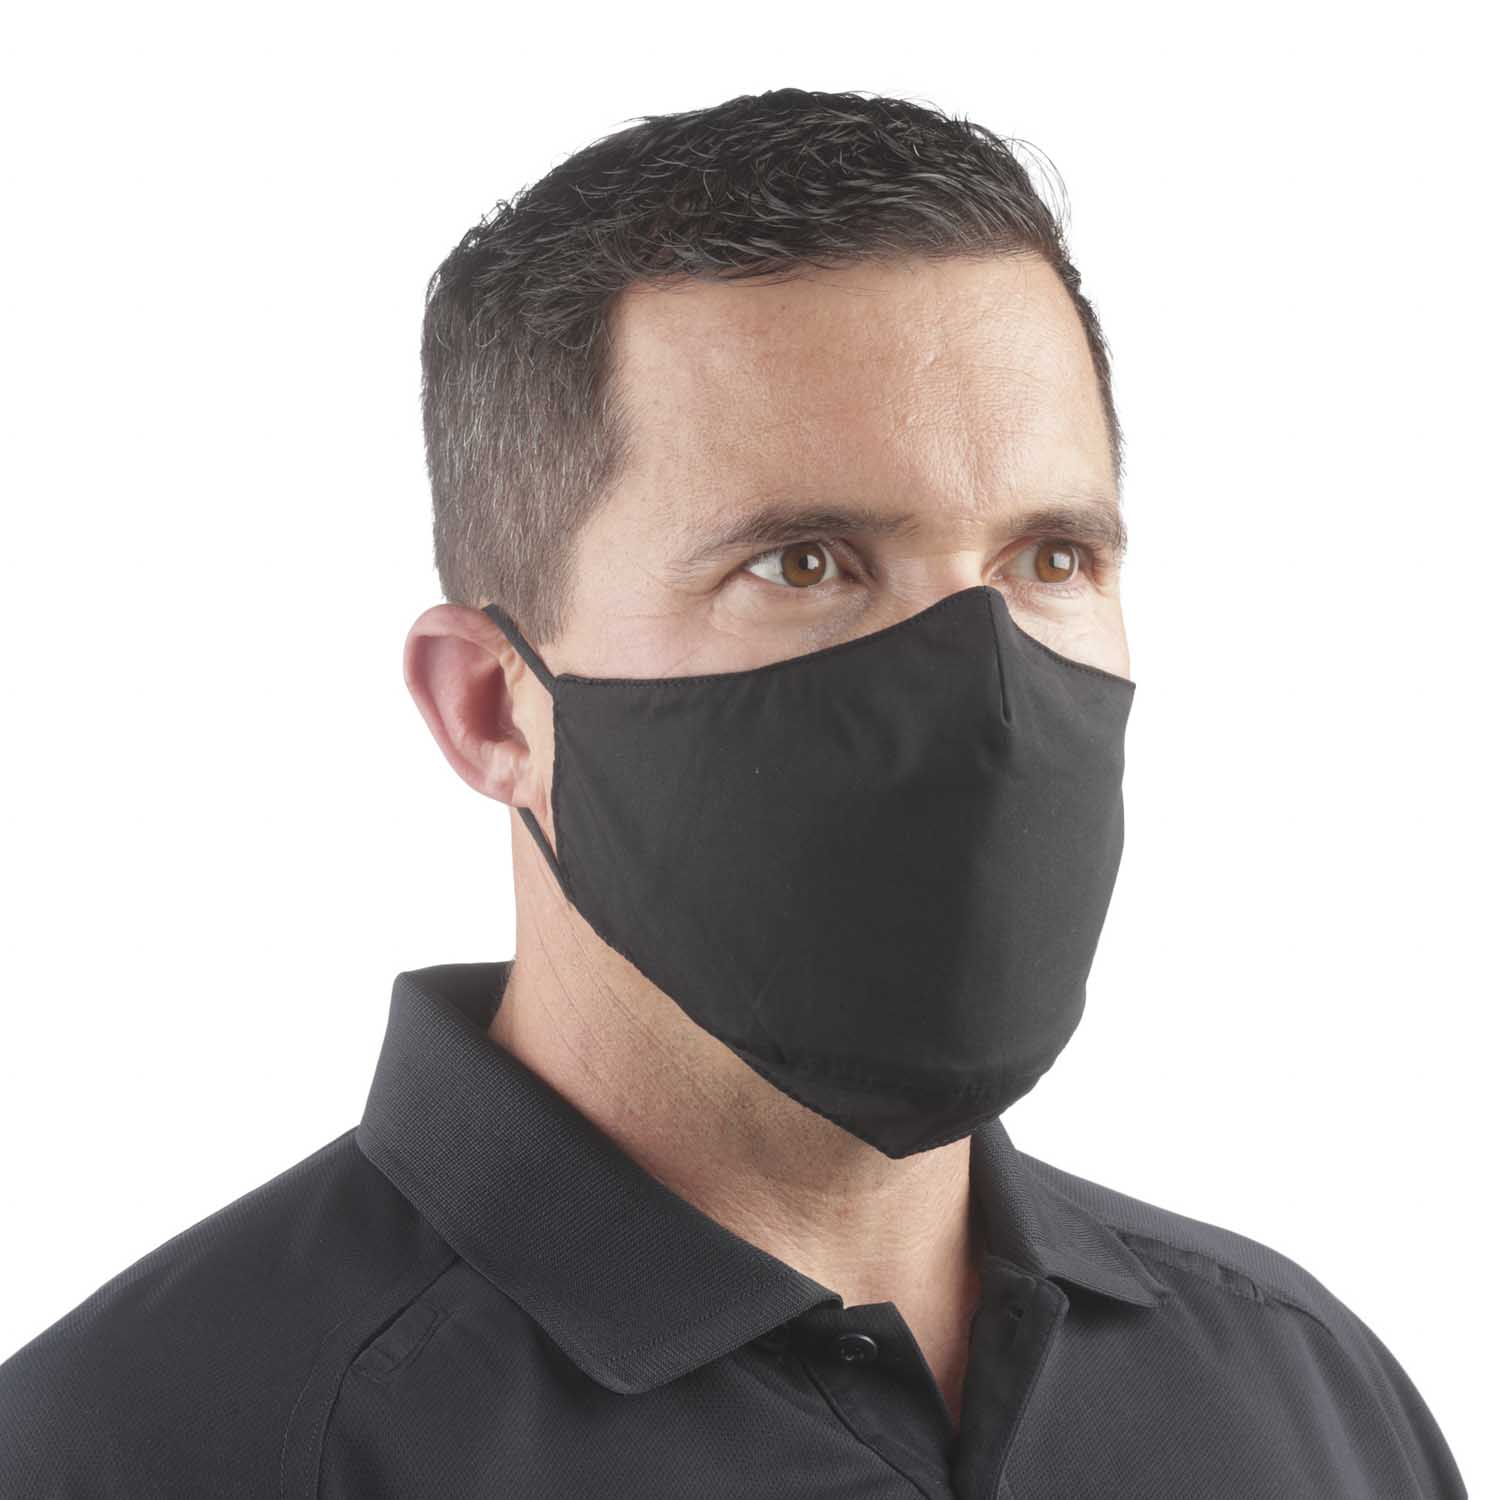 Galls G-Shield Face Covering Pack (2 Pieces)